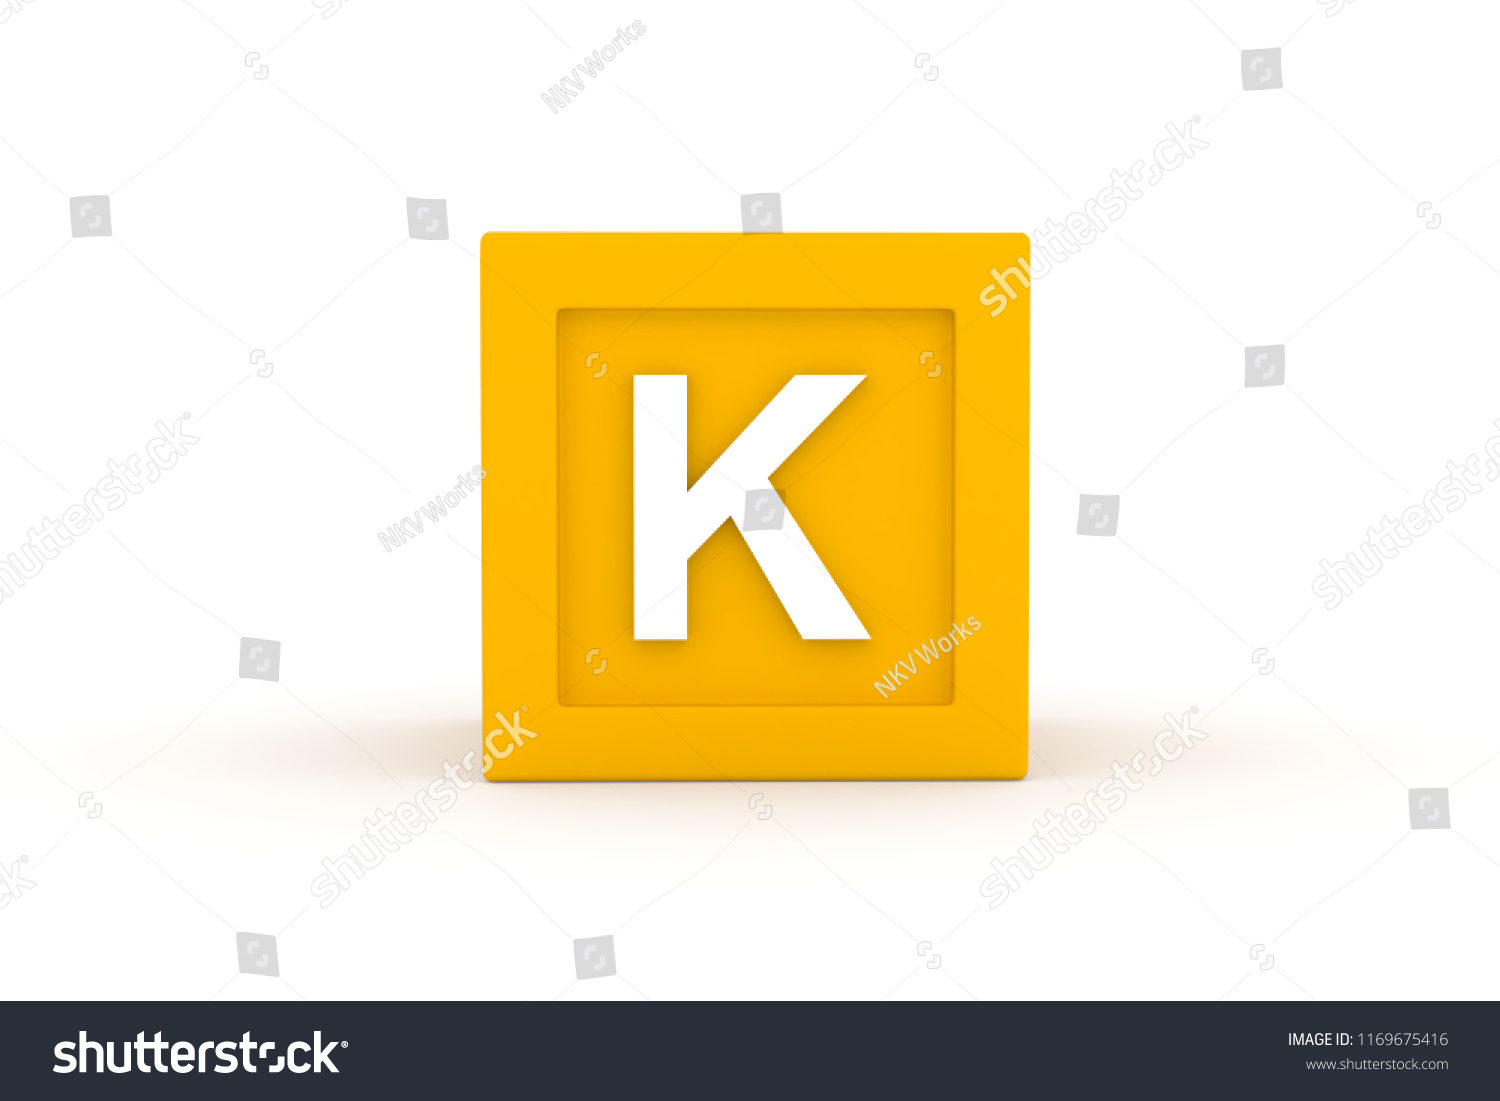 letter k uppercase with yellow color block on white background 3d illustration